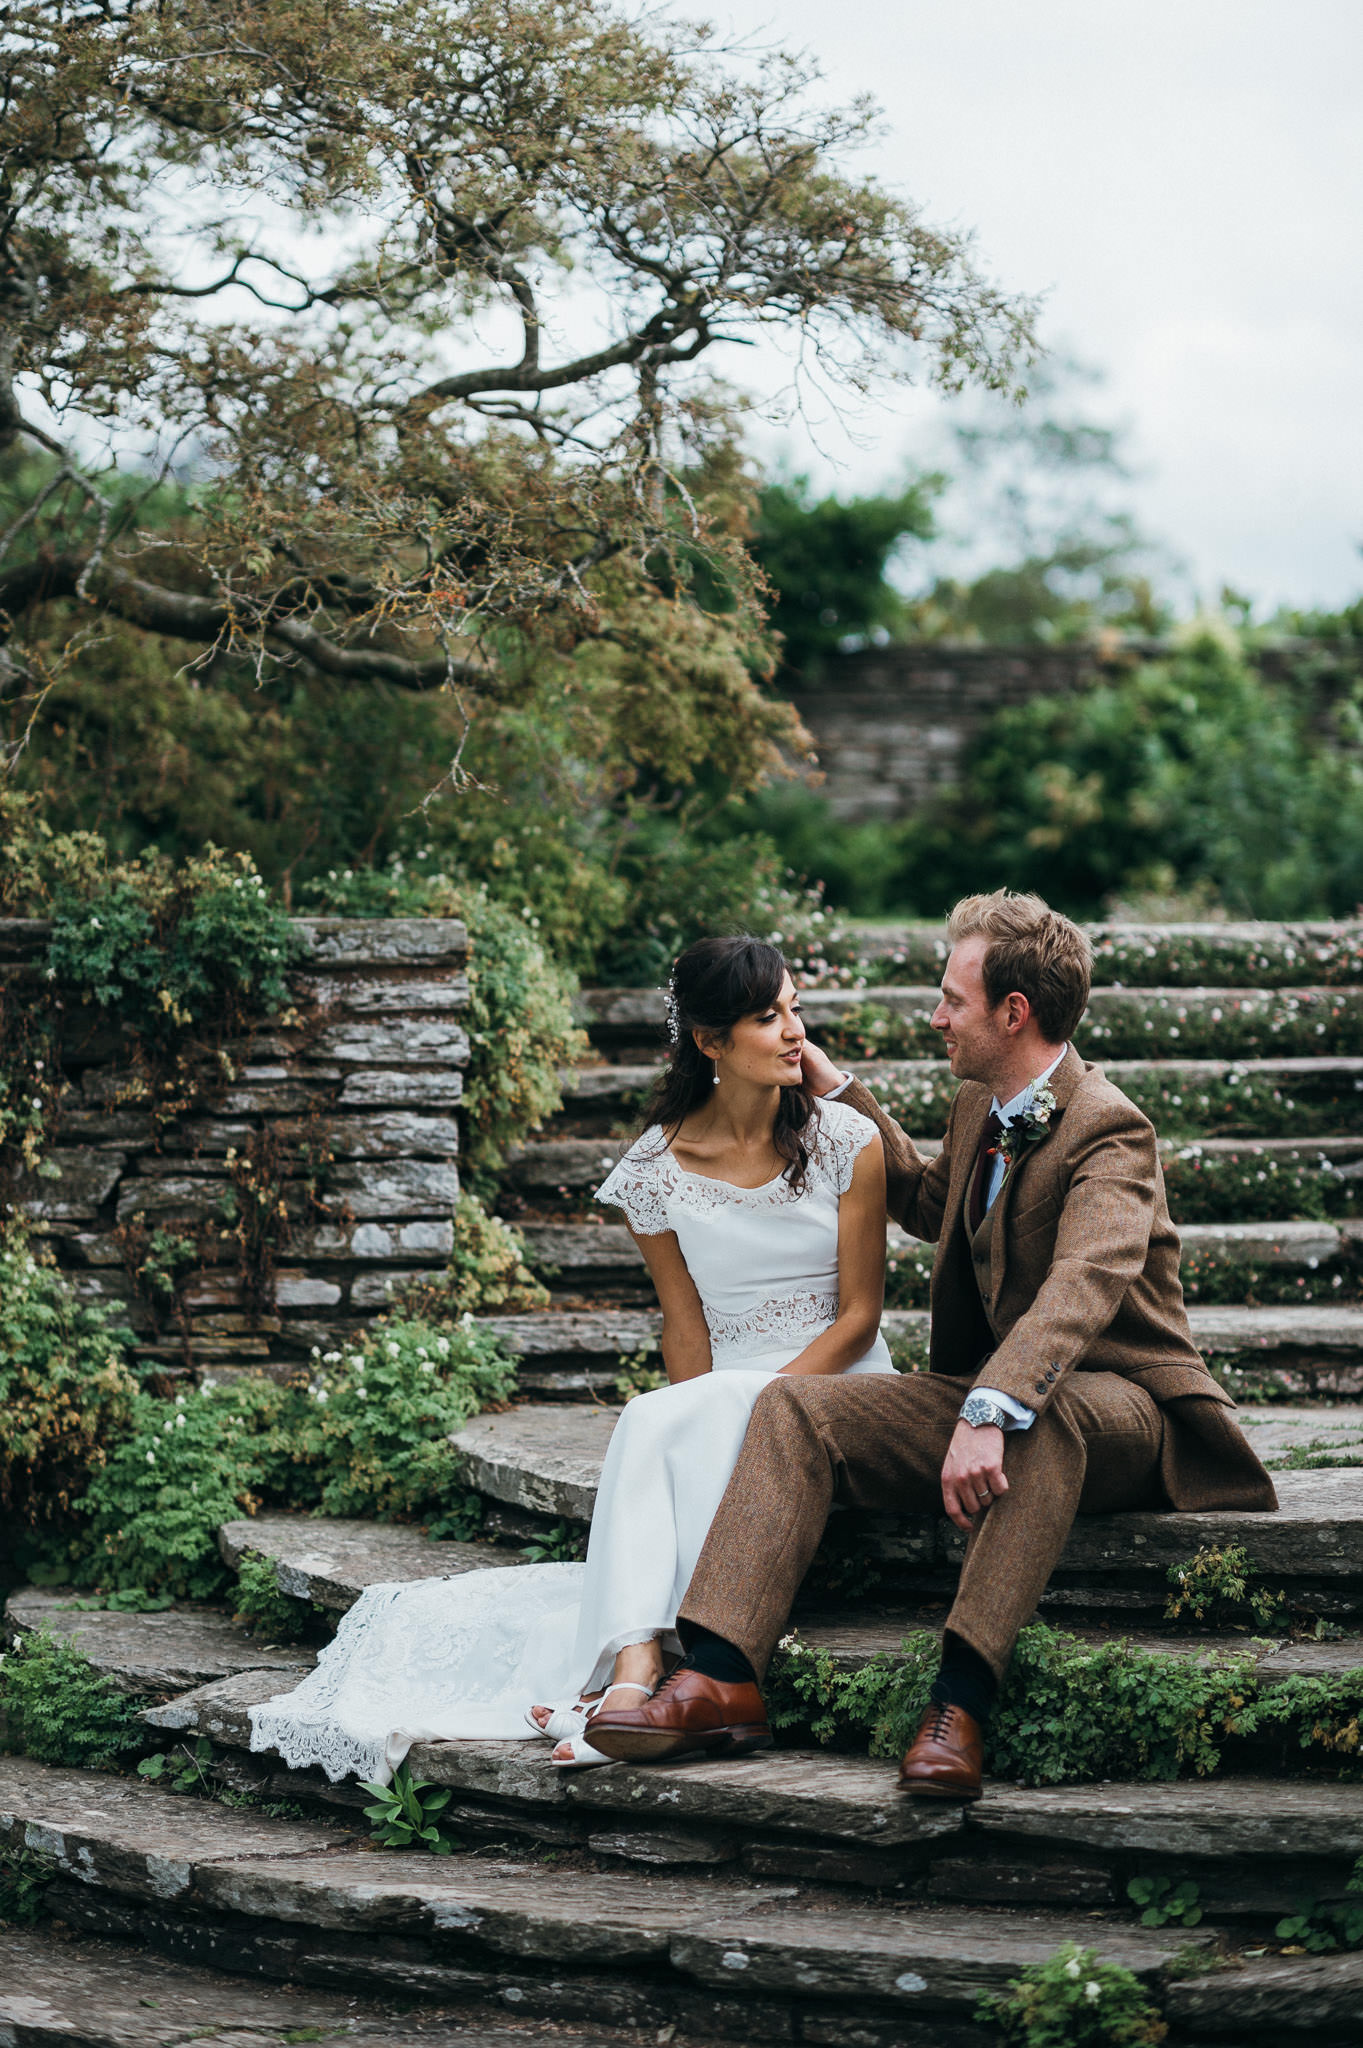 Newlyweds at Hestercombe gardens